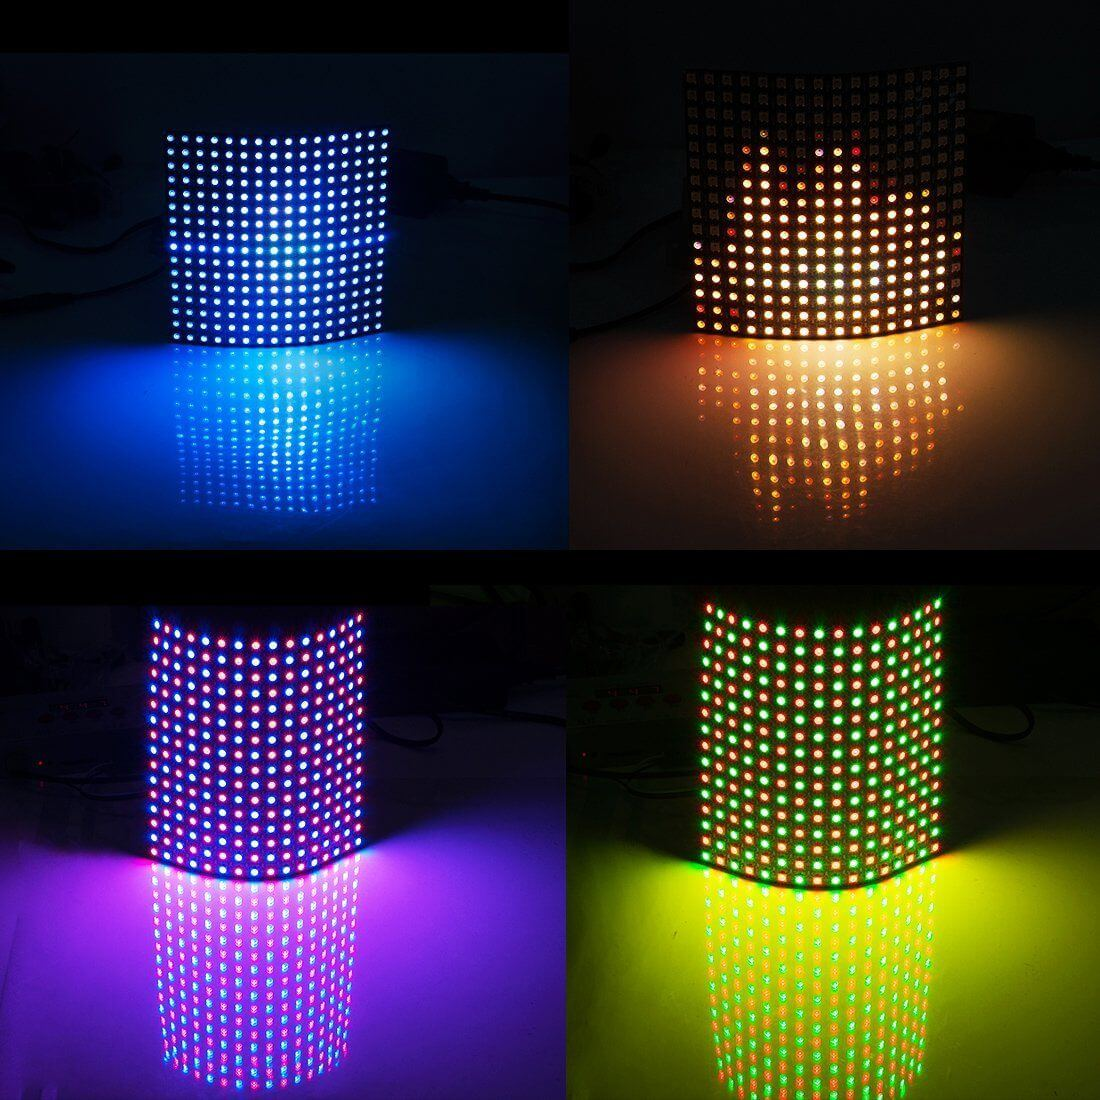 LED Pixel Lights with WS2812 IC